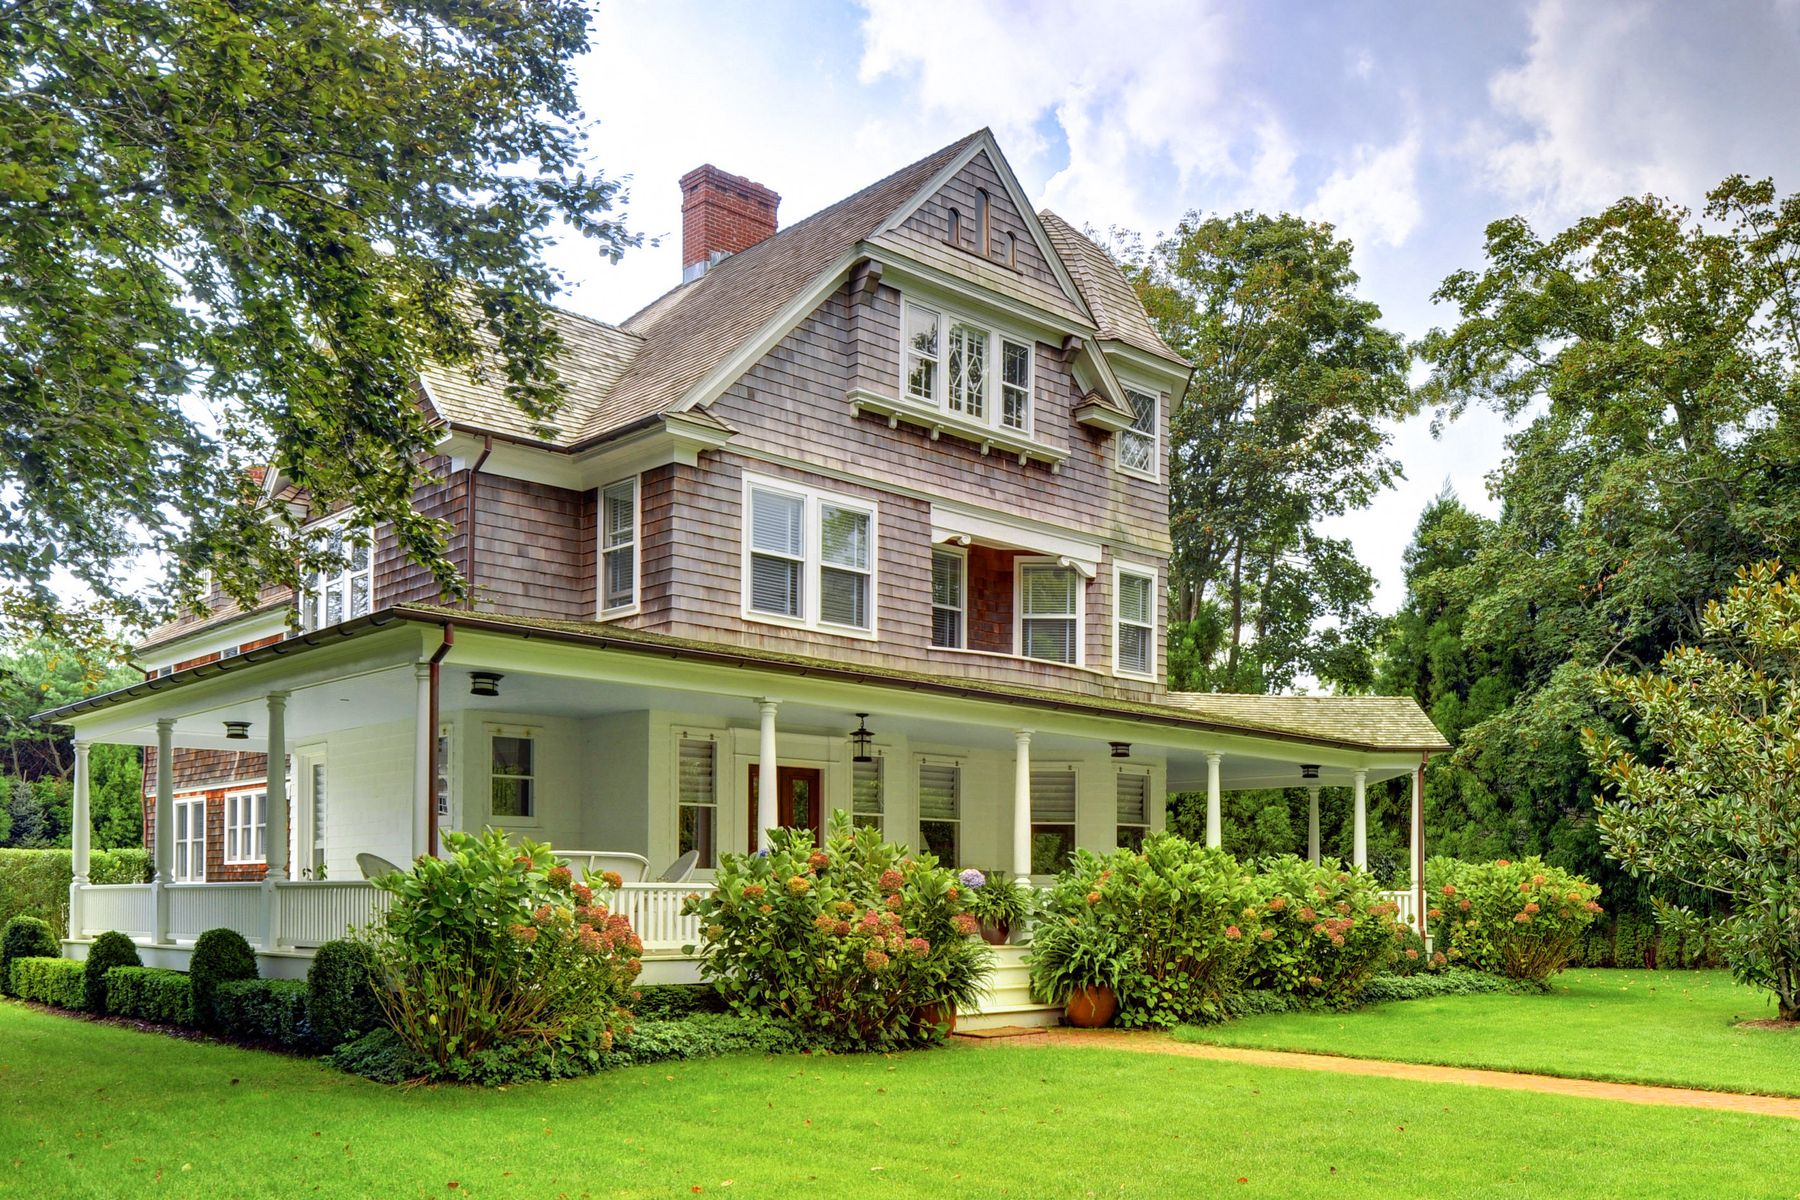 Single Family Homes for Active at PRIME VILLAGE SOUTH LOCATION 29 Huntting Lane East Hampton, New York 11937 United States